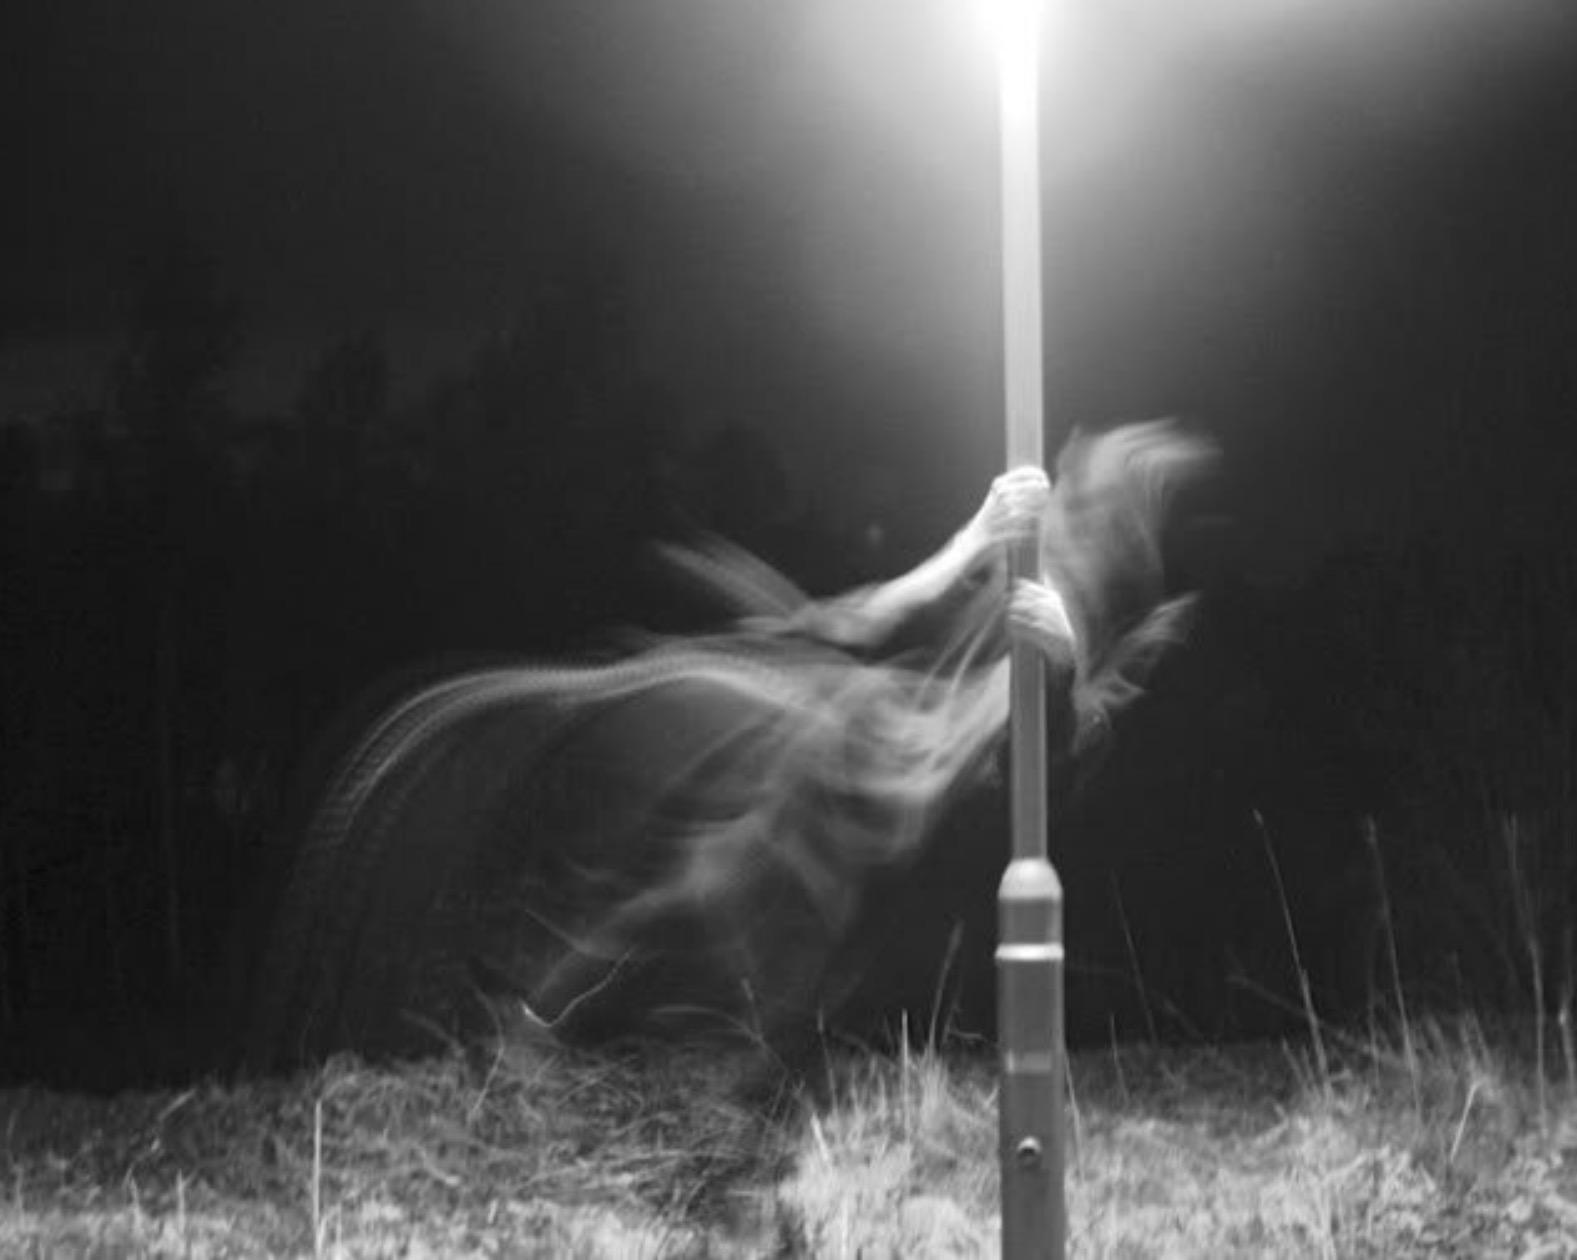 science can't explain the ghosts mystery